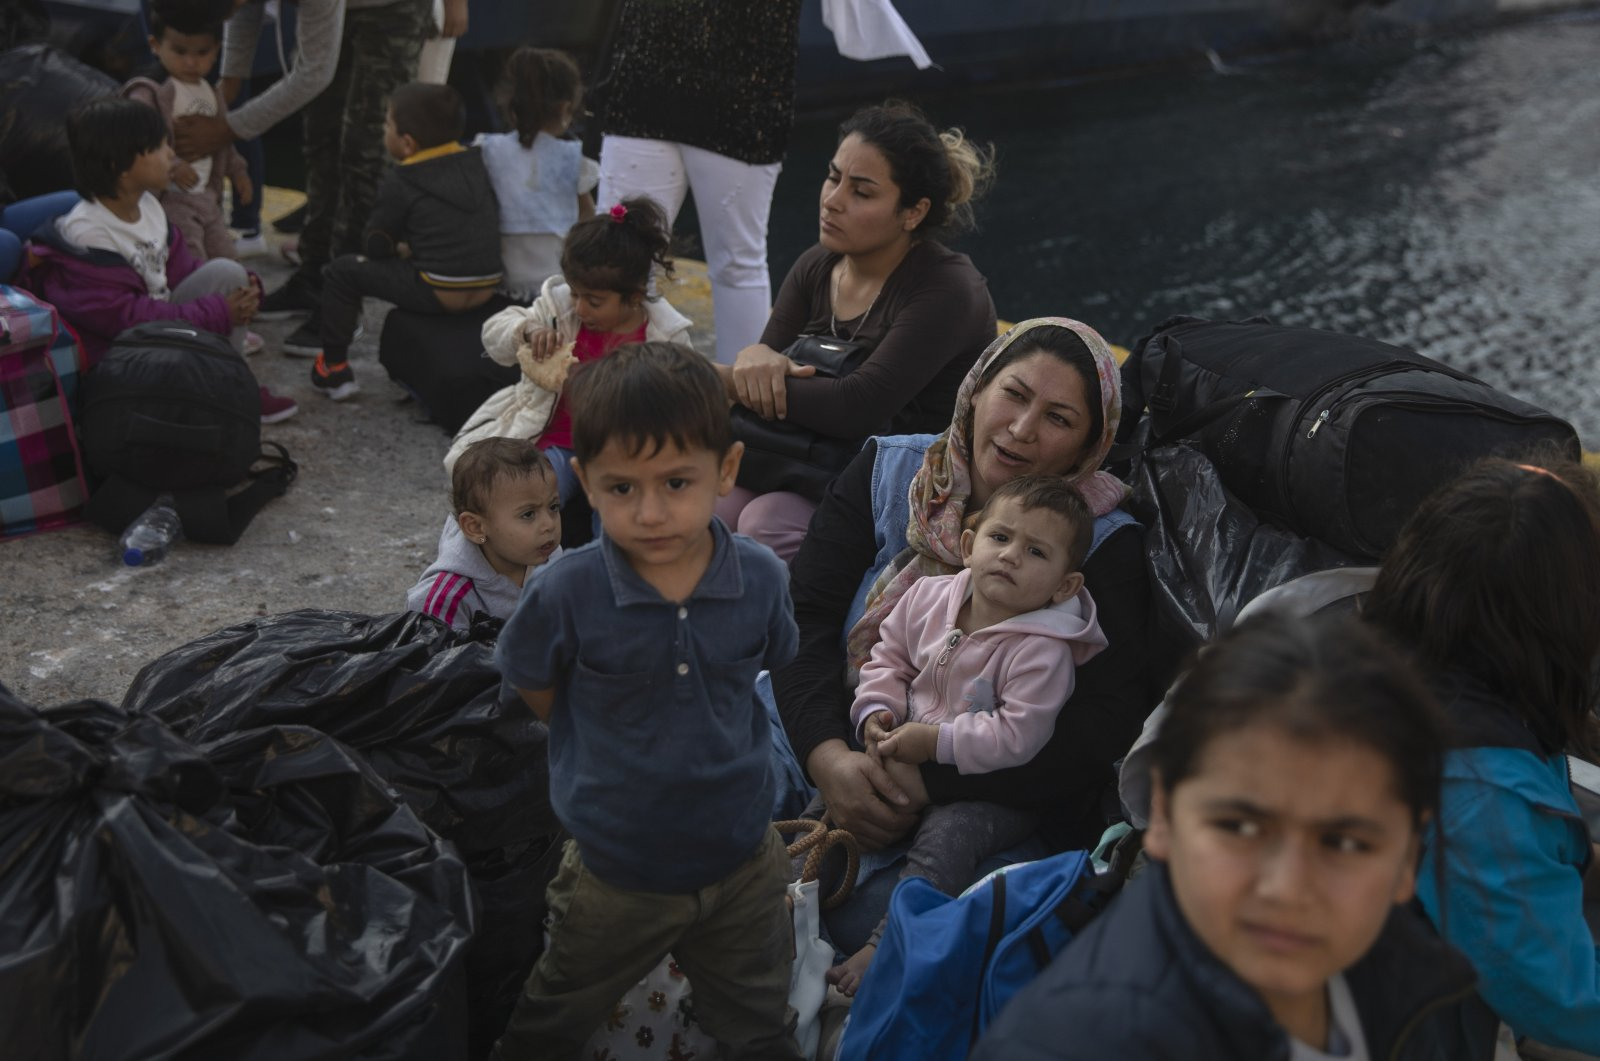 Refugees and migrants wait for buses after their arrival to the port of Elefsina, near Athens, Greece, Oct. 22, 2019. (AP Photo)